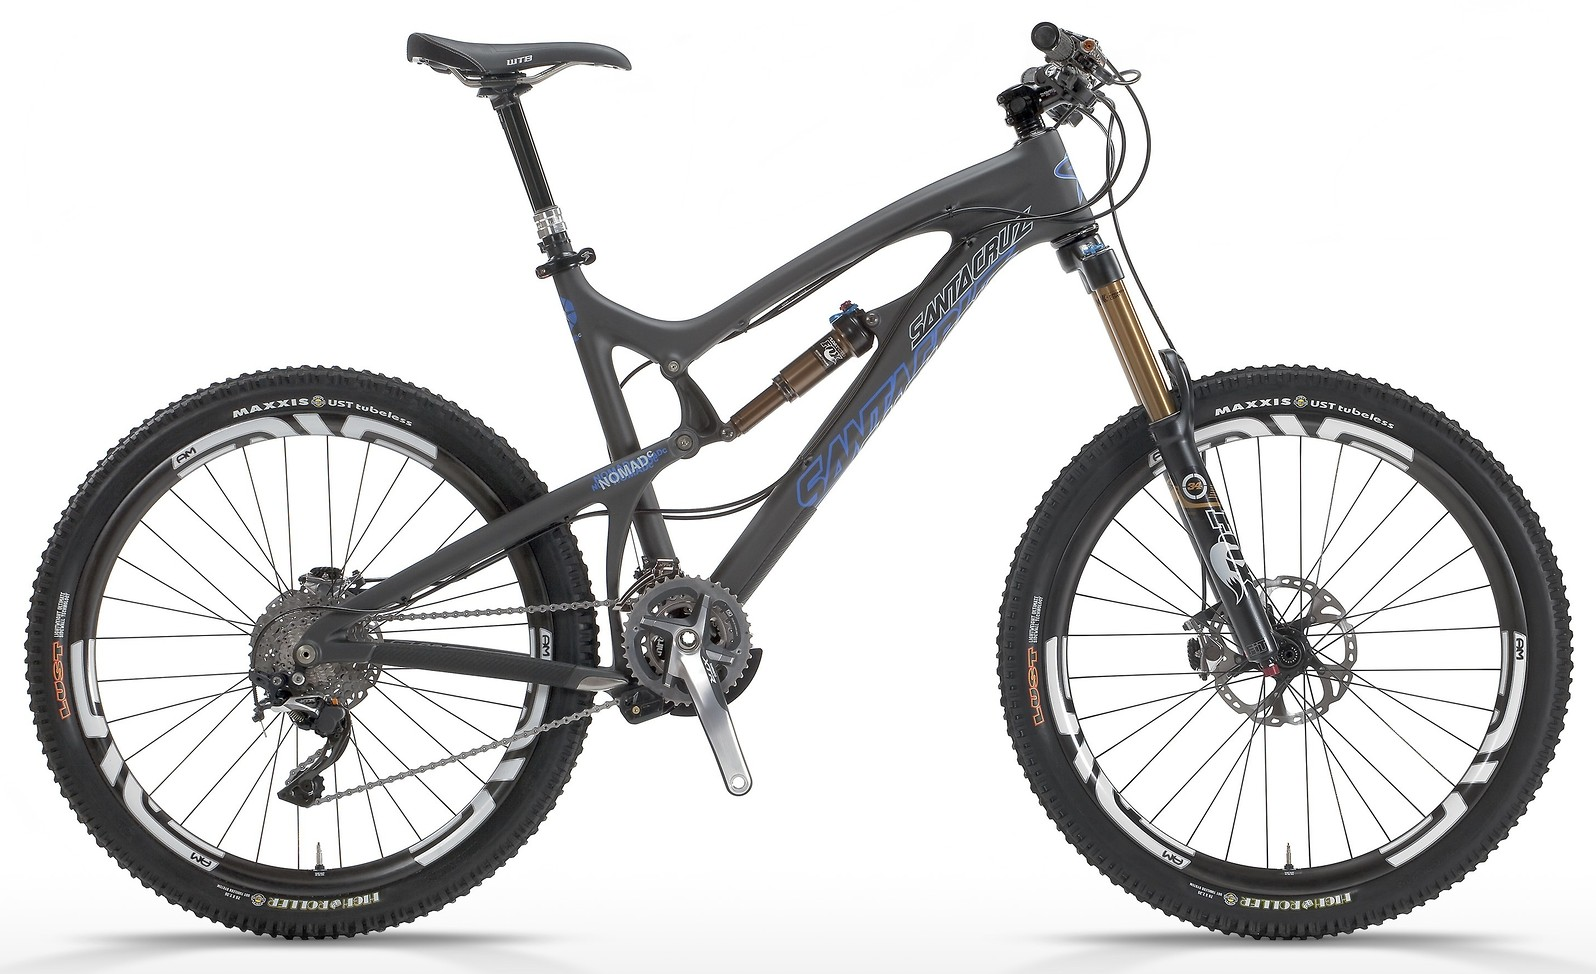 2014 Santa Cruz Nomad Carbon R AM Bike 2013 NOMAD Ccatalogflat